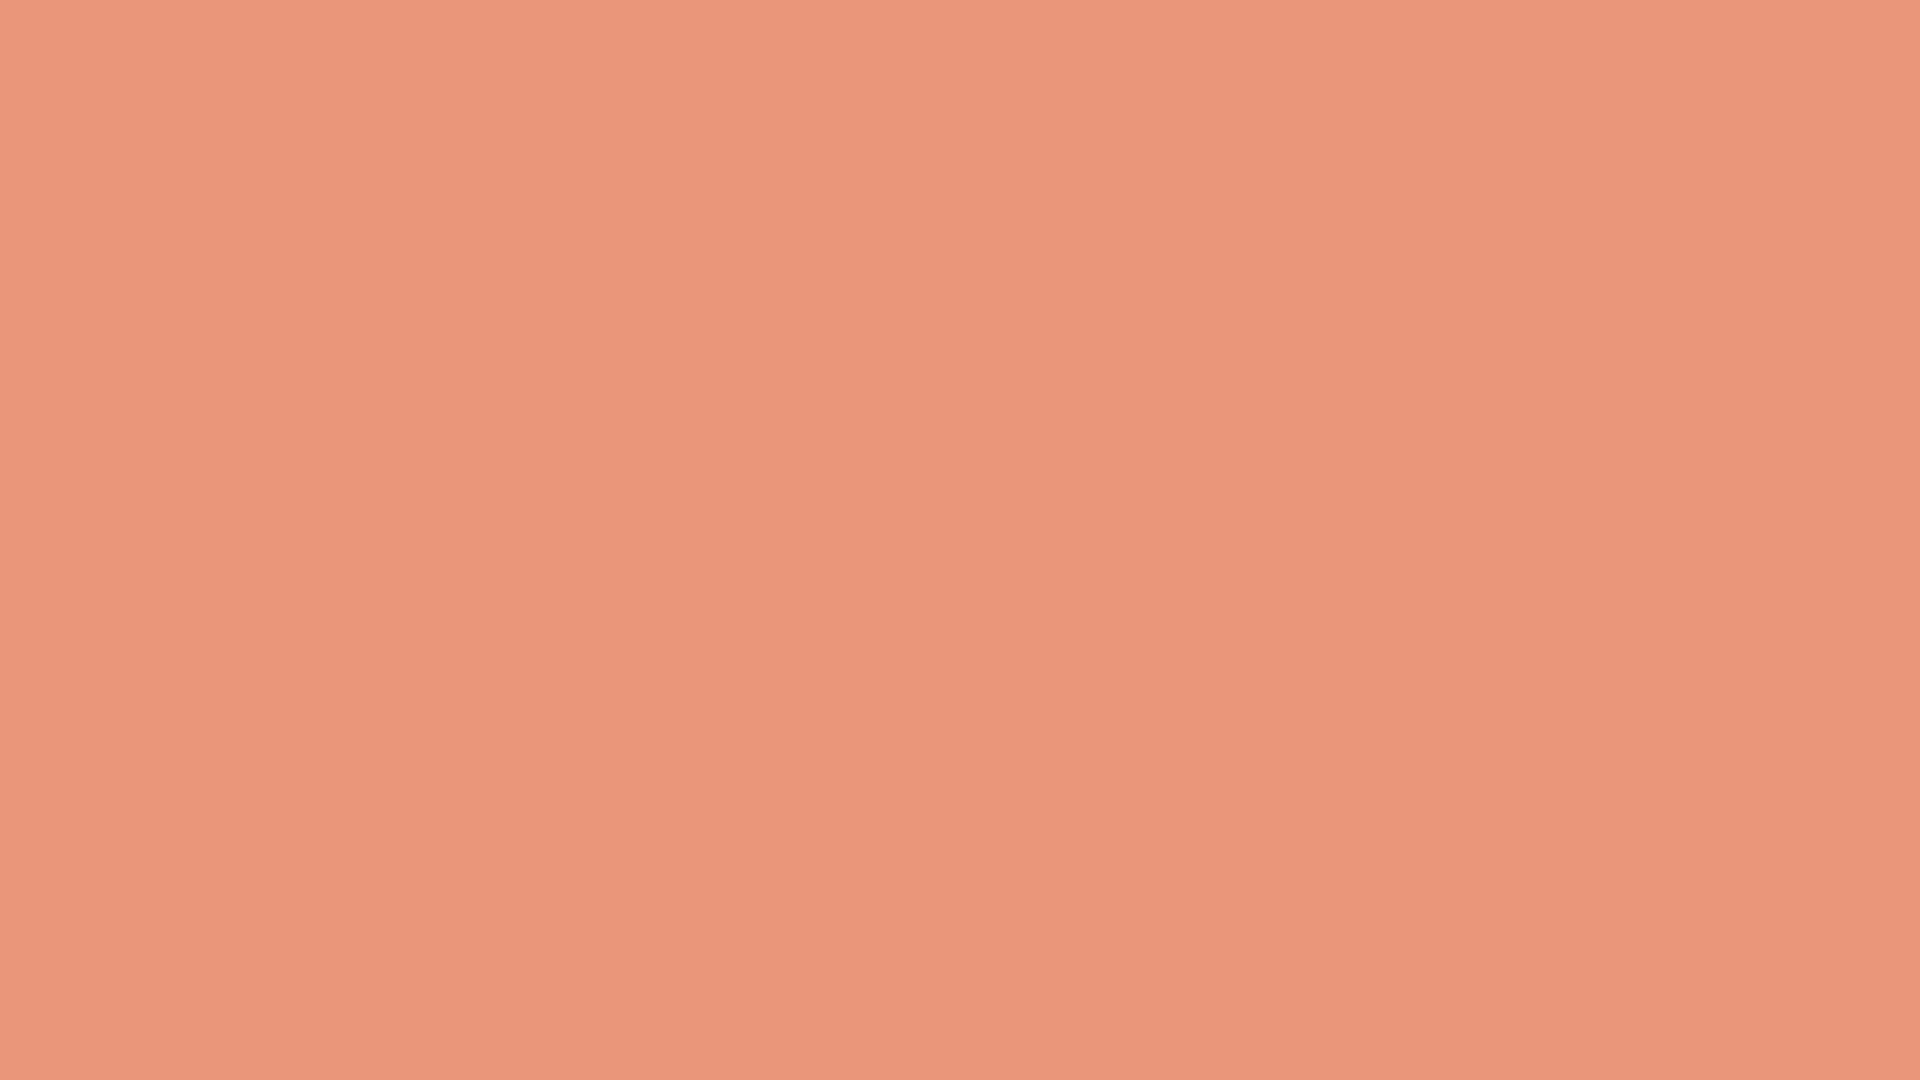 1920x1080 Dark Salmon Solid Color Background